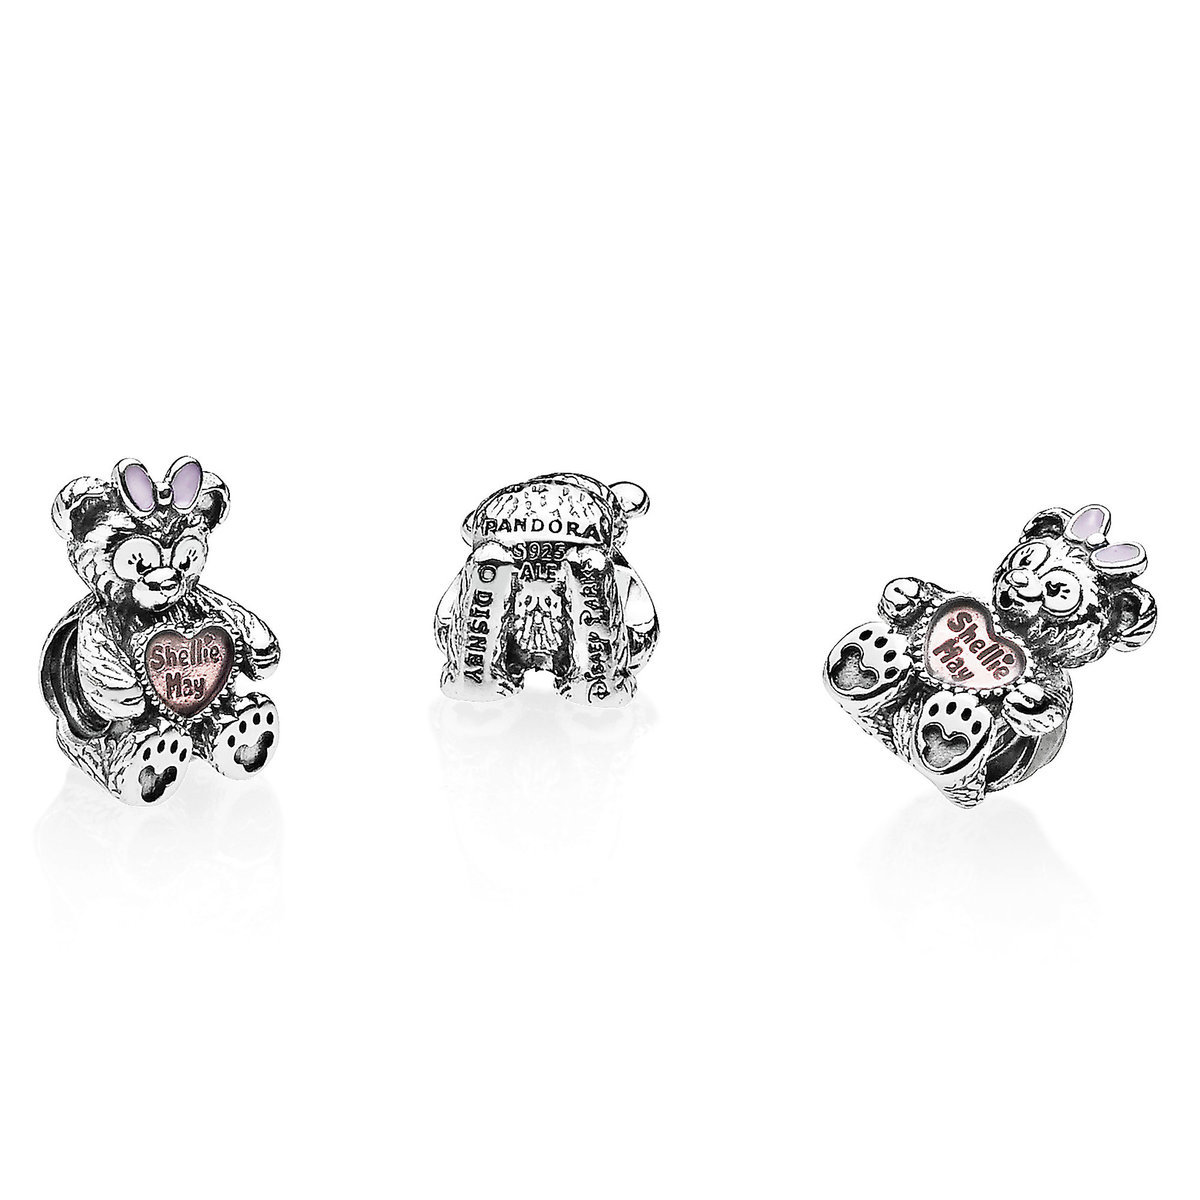 New Disney Pandora Collection Out Now